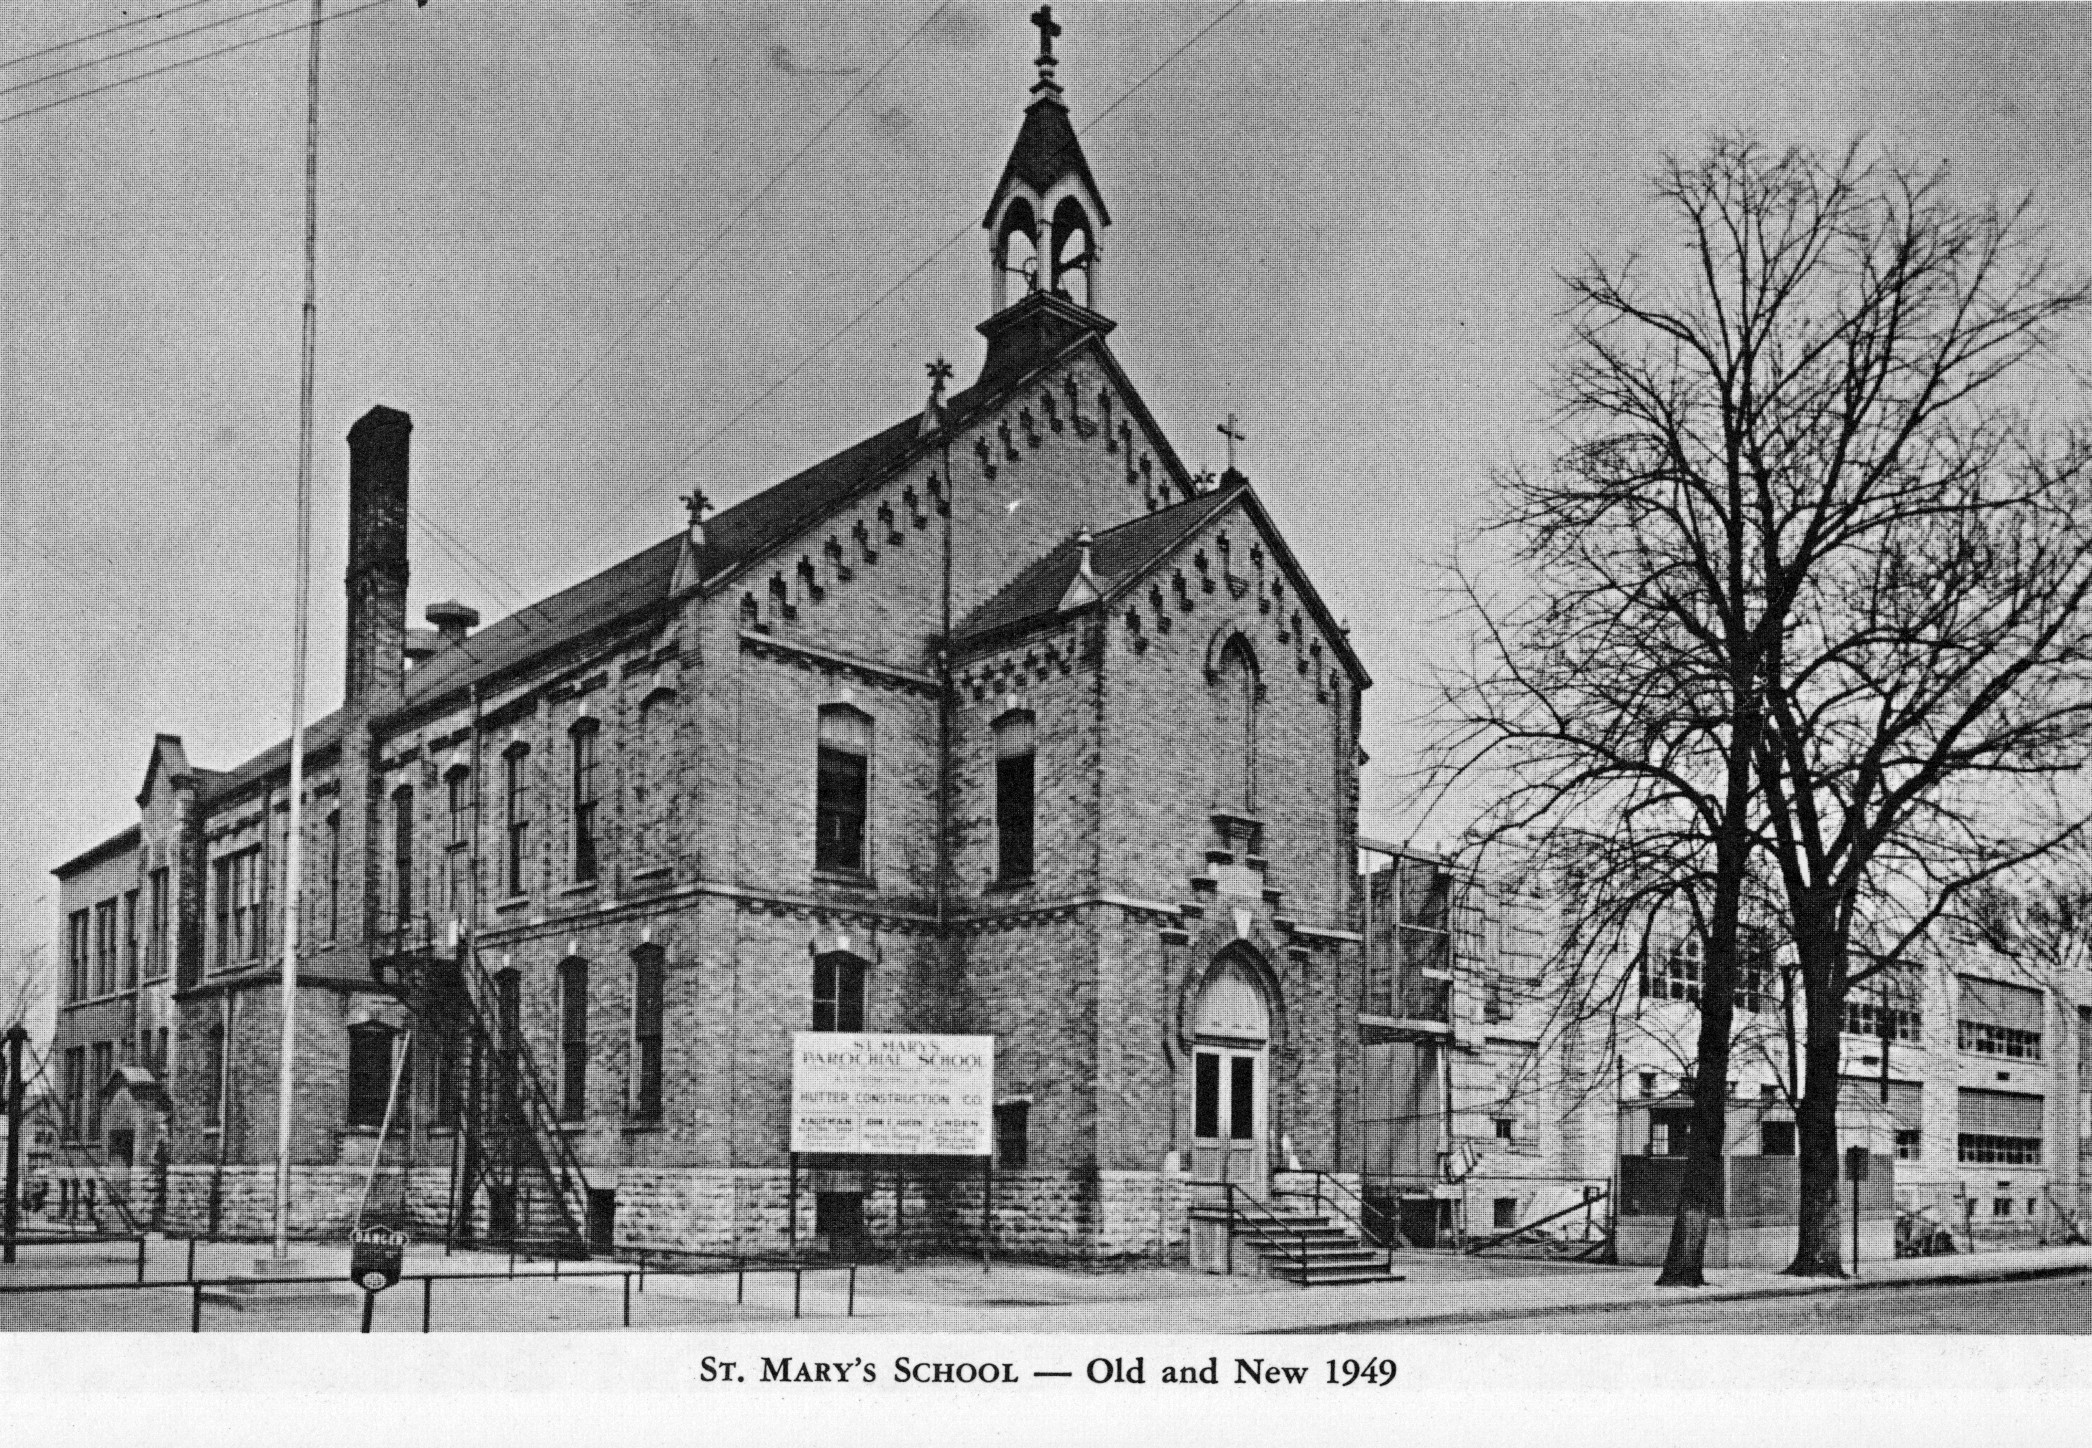 Old St. Mary's School with the new school building in the background, 1949.